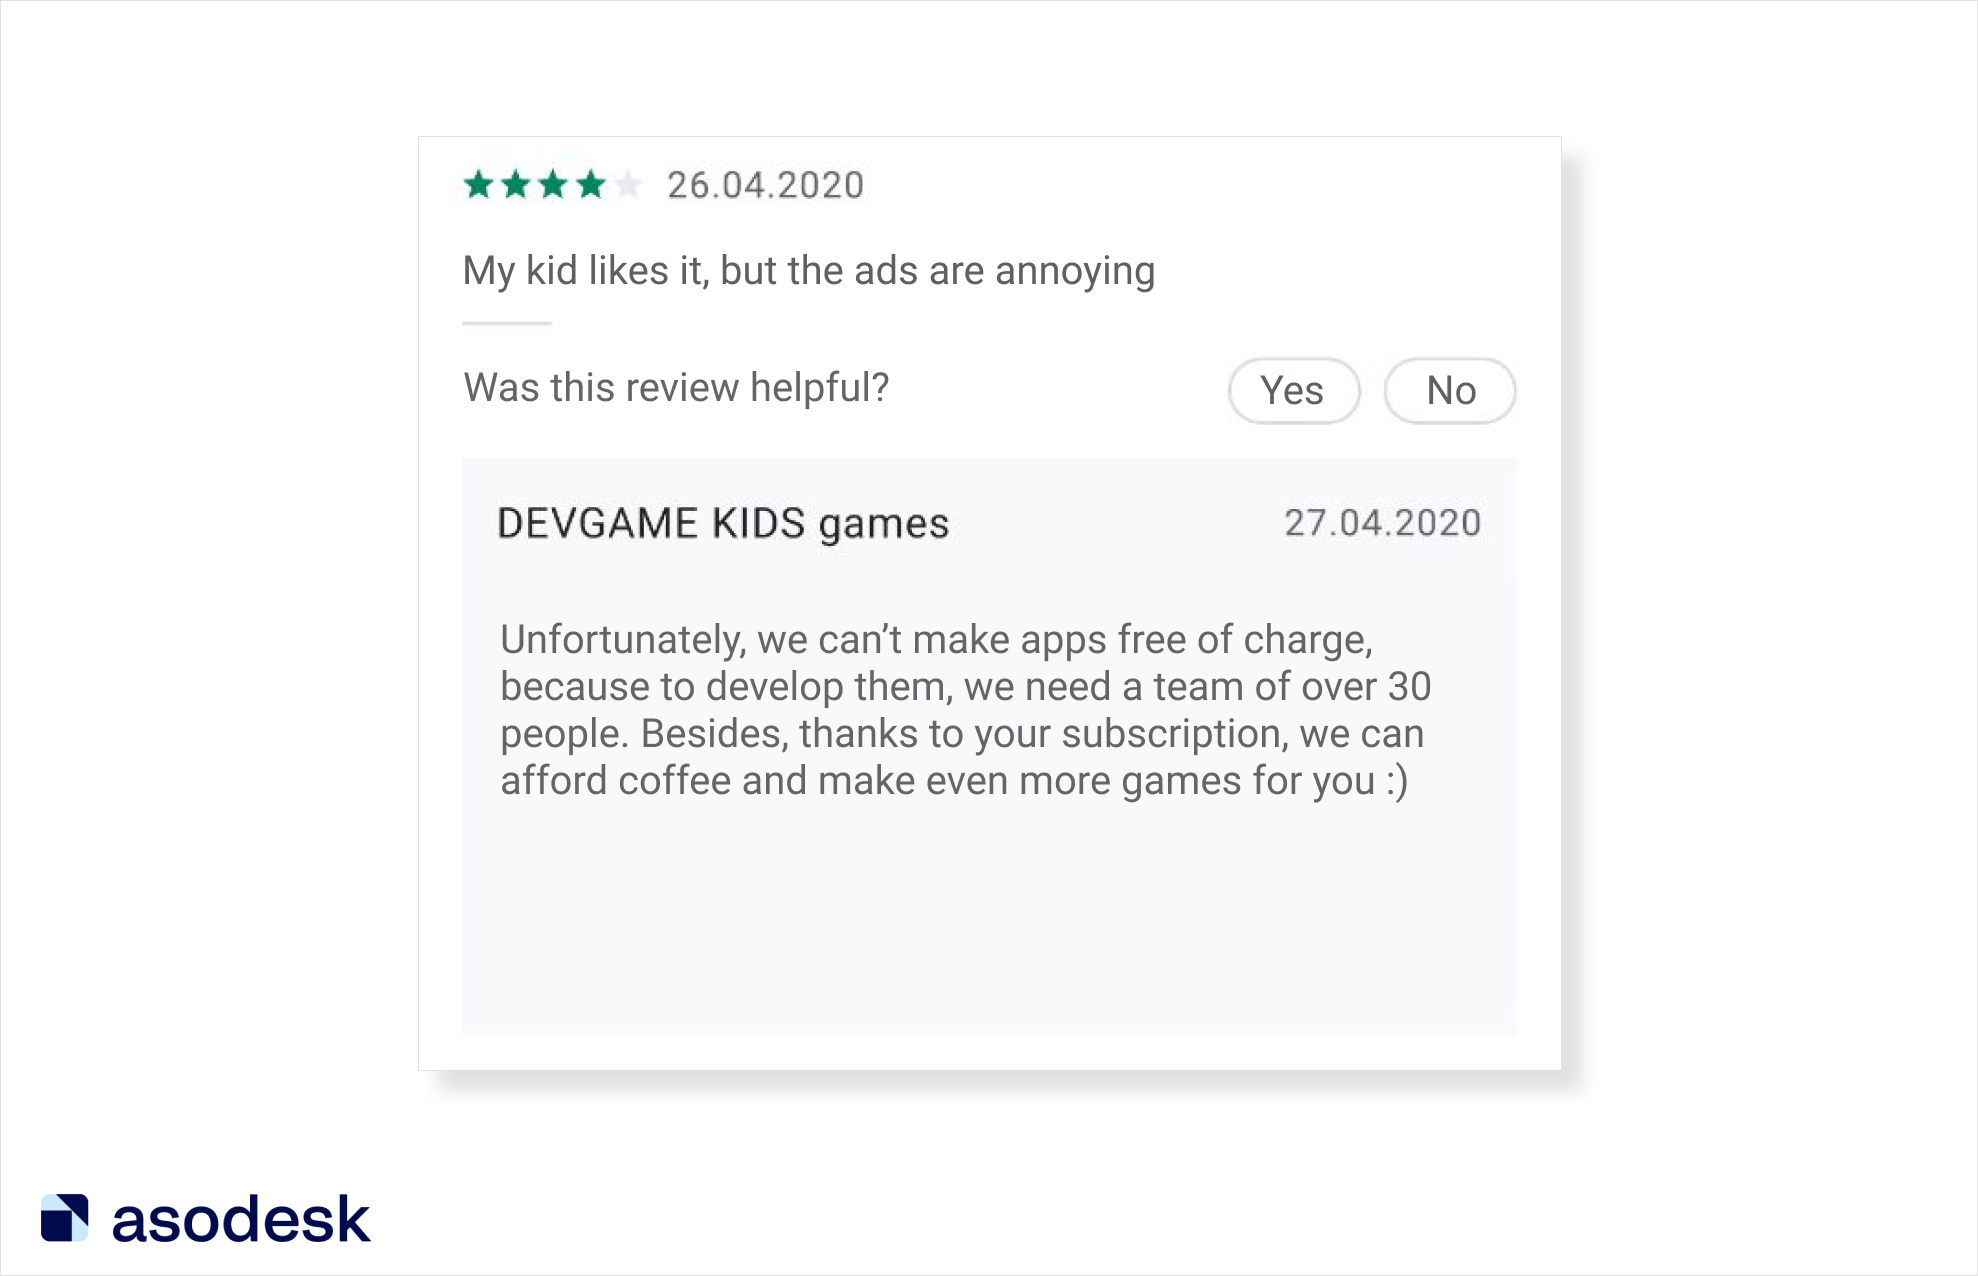 The developer explained to the user why it is impossible to make a children's application free